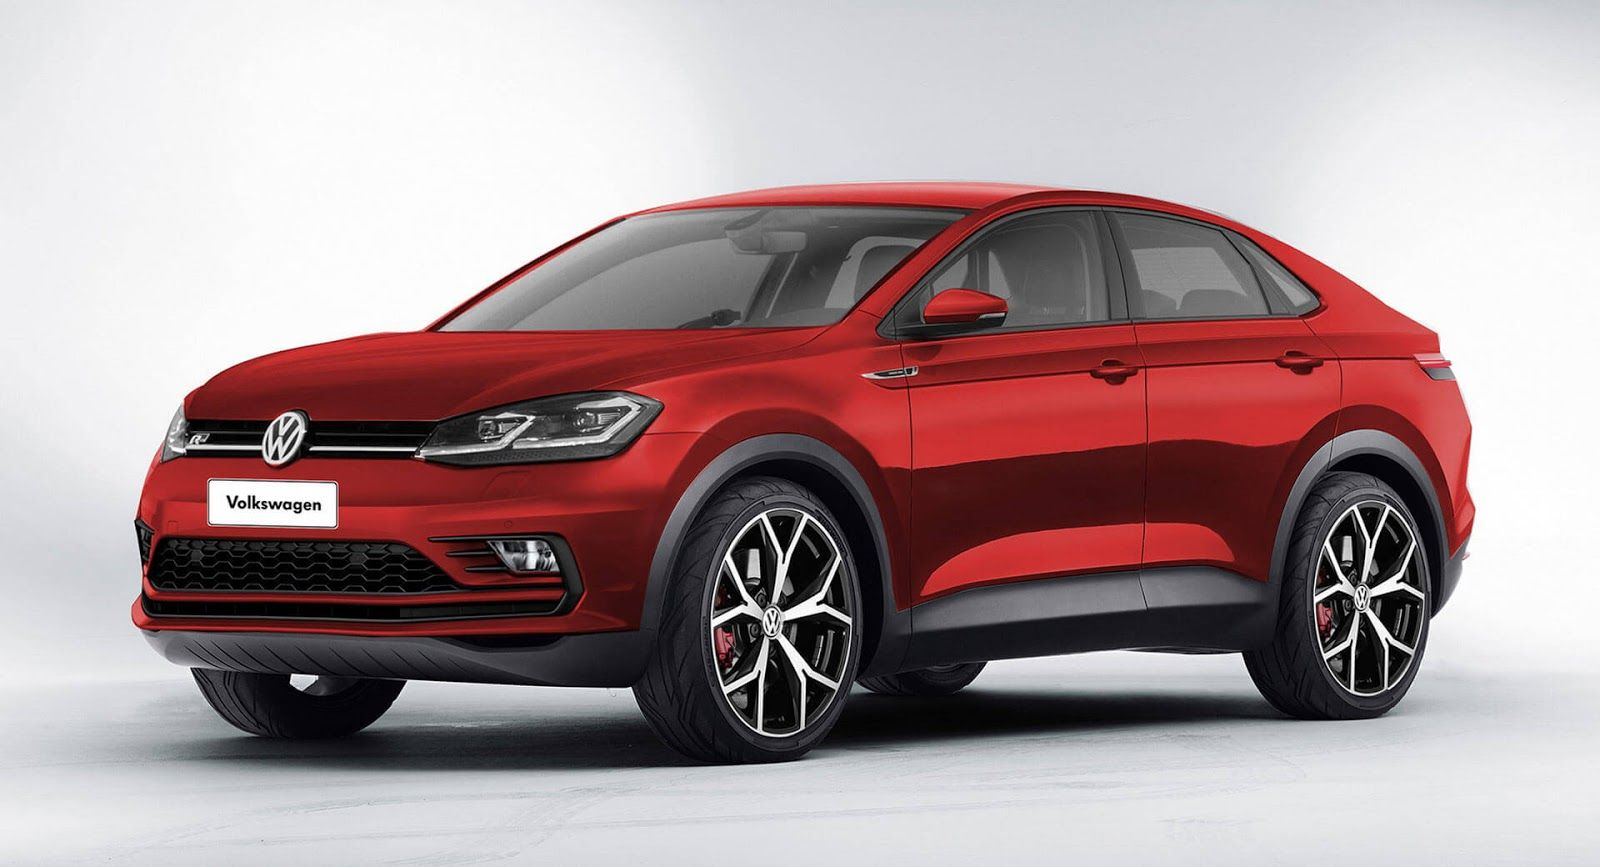 Upcoming Vw I D Cross Rendered In Production Guise Cars